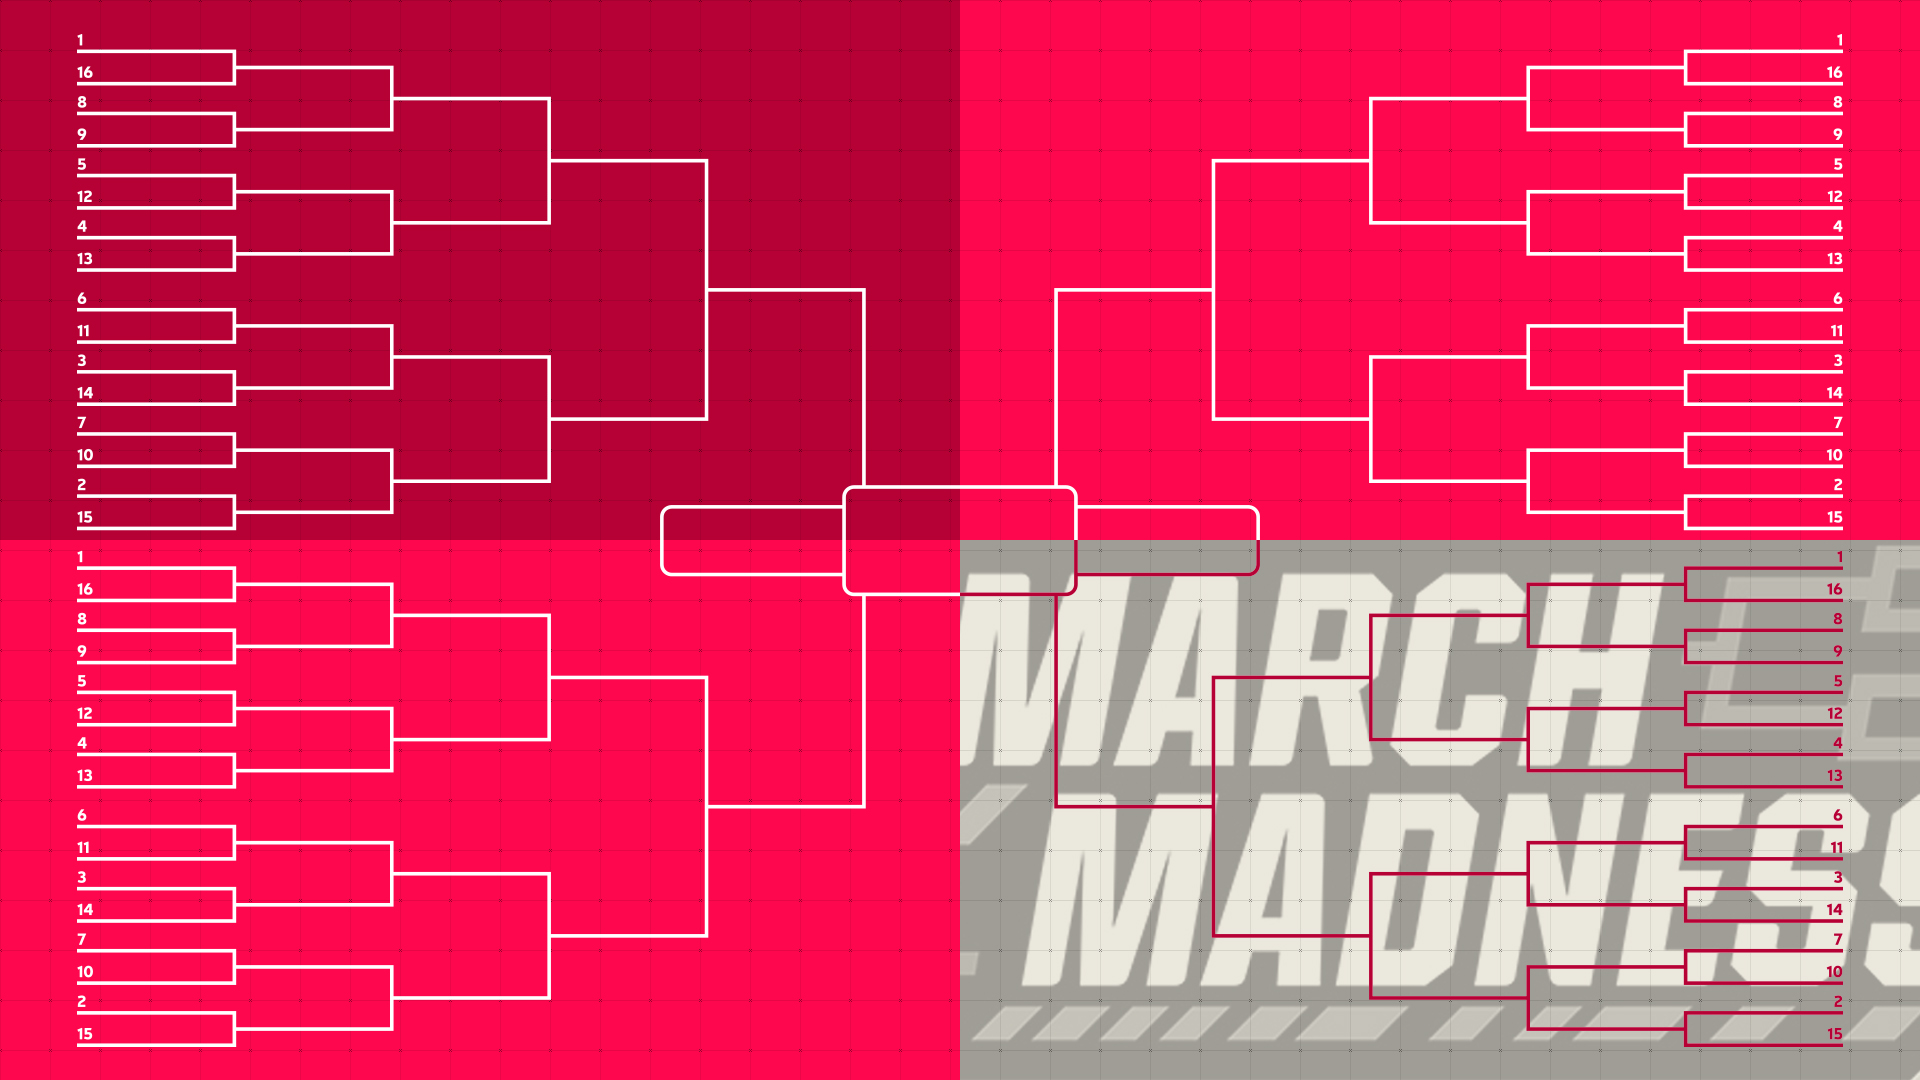 picture about Printable Sec Tournament Bracket titled March Insanity bracket 2019: Greatest NCAA Match marketplace of